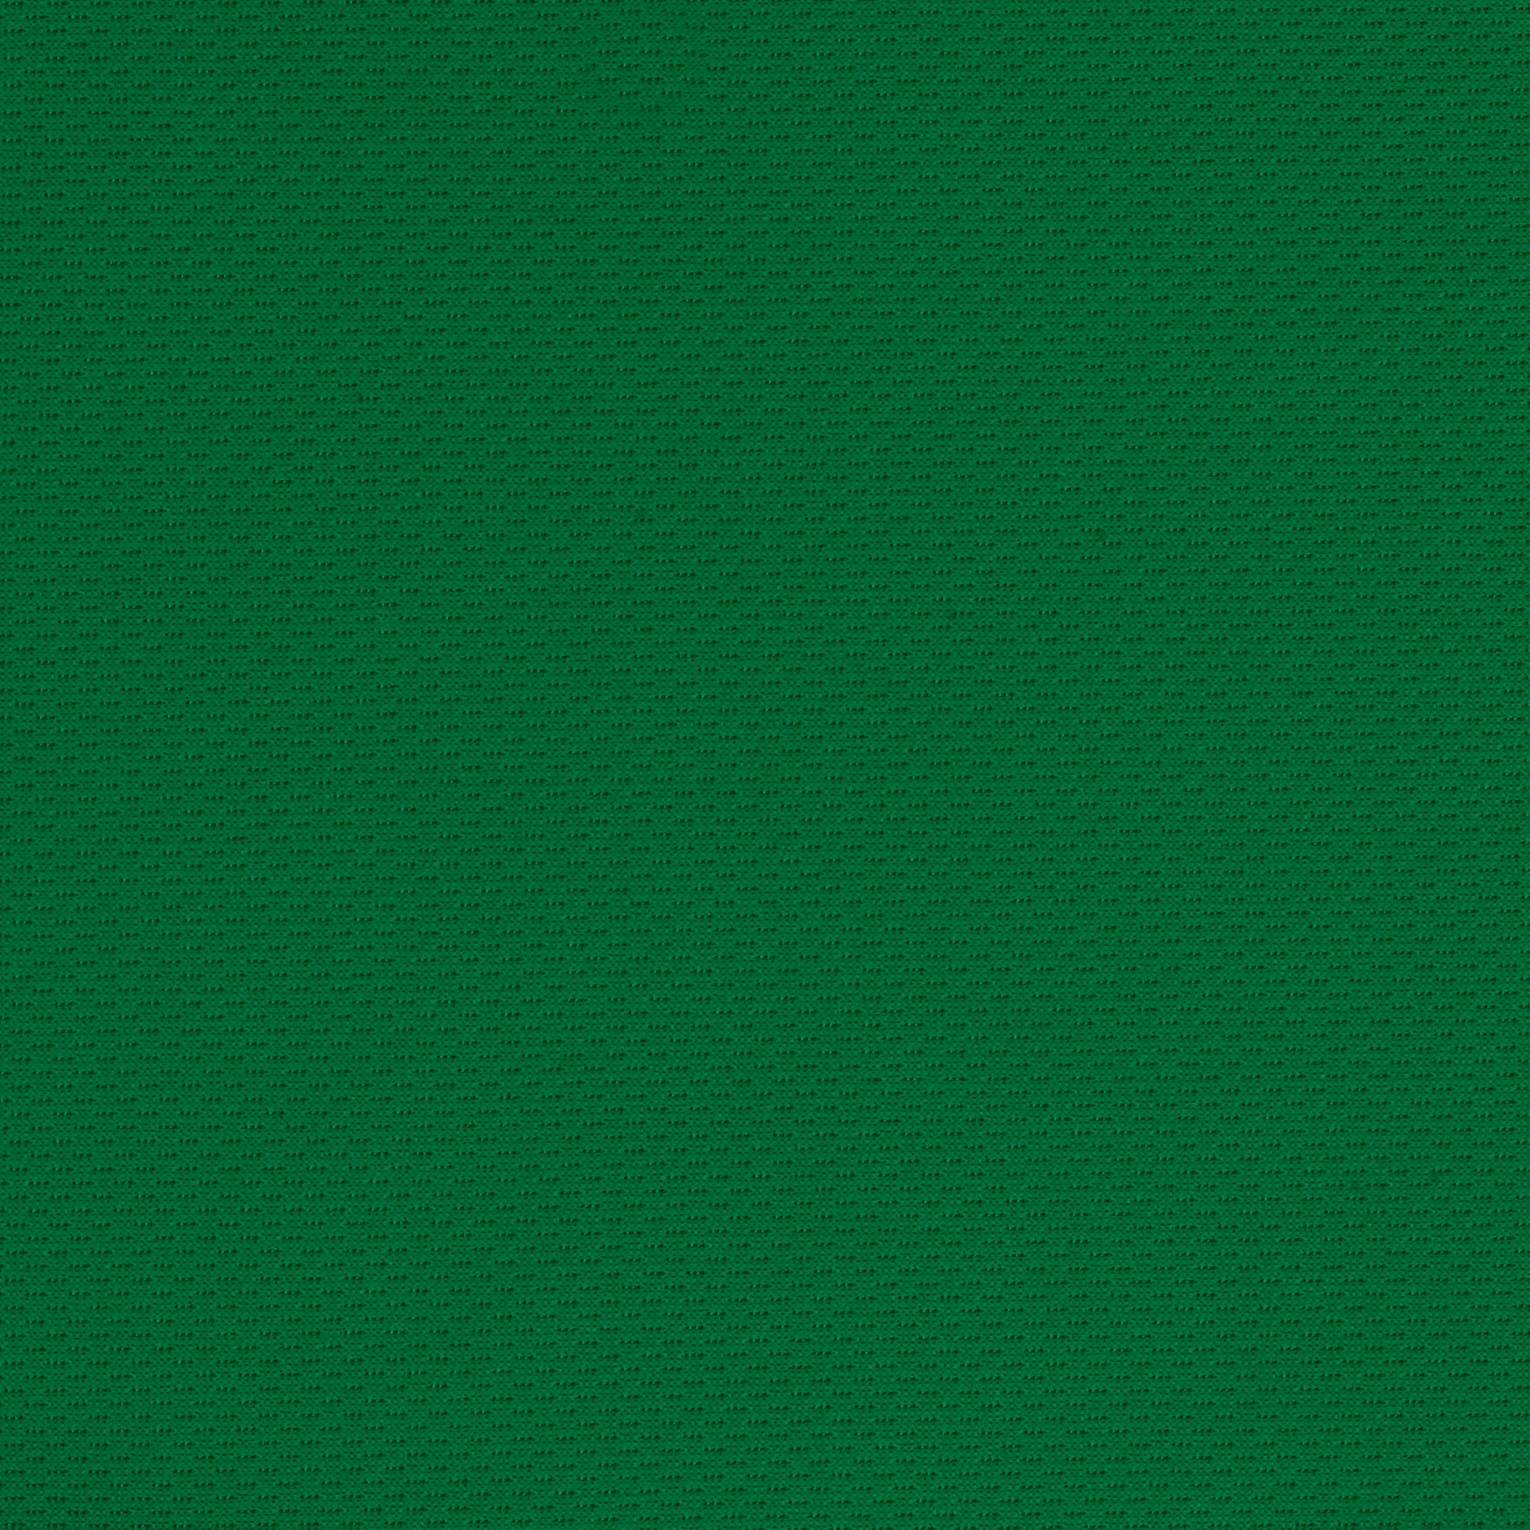 Athletic Mesh Knit Kelly Green Fabric 0454521